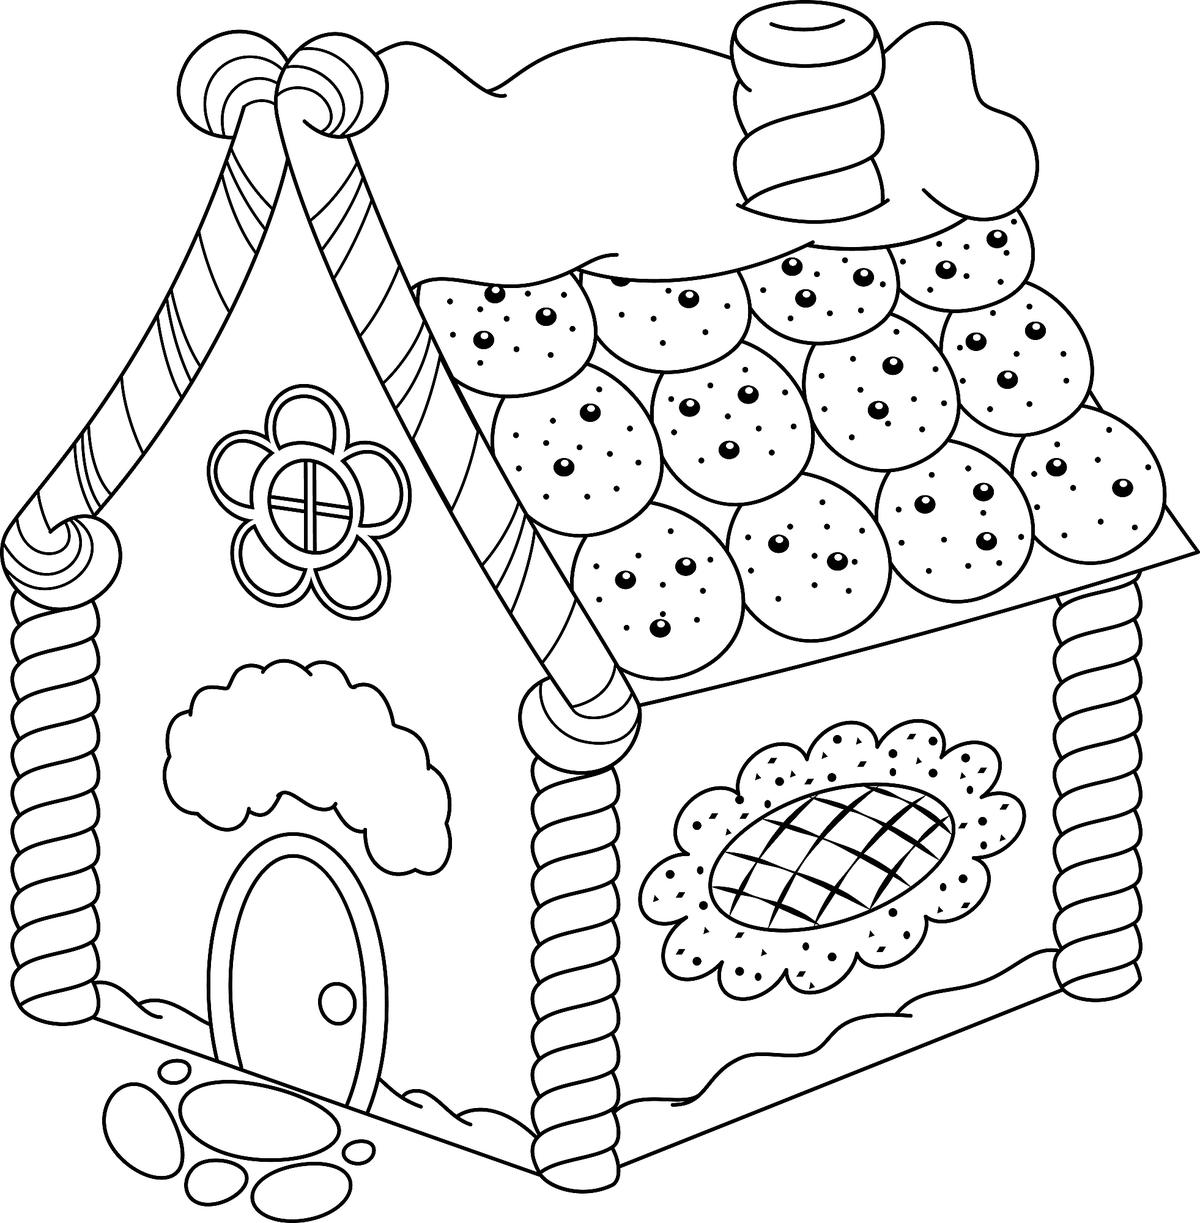 gingerbread house coloring pages printable gingerbread house coloring pages for kids house pages gingerbread coloring